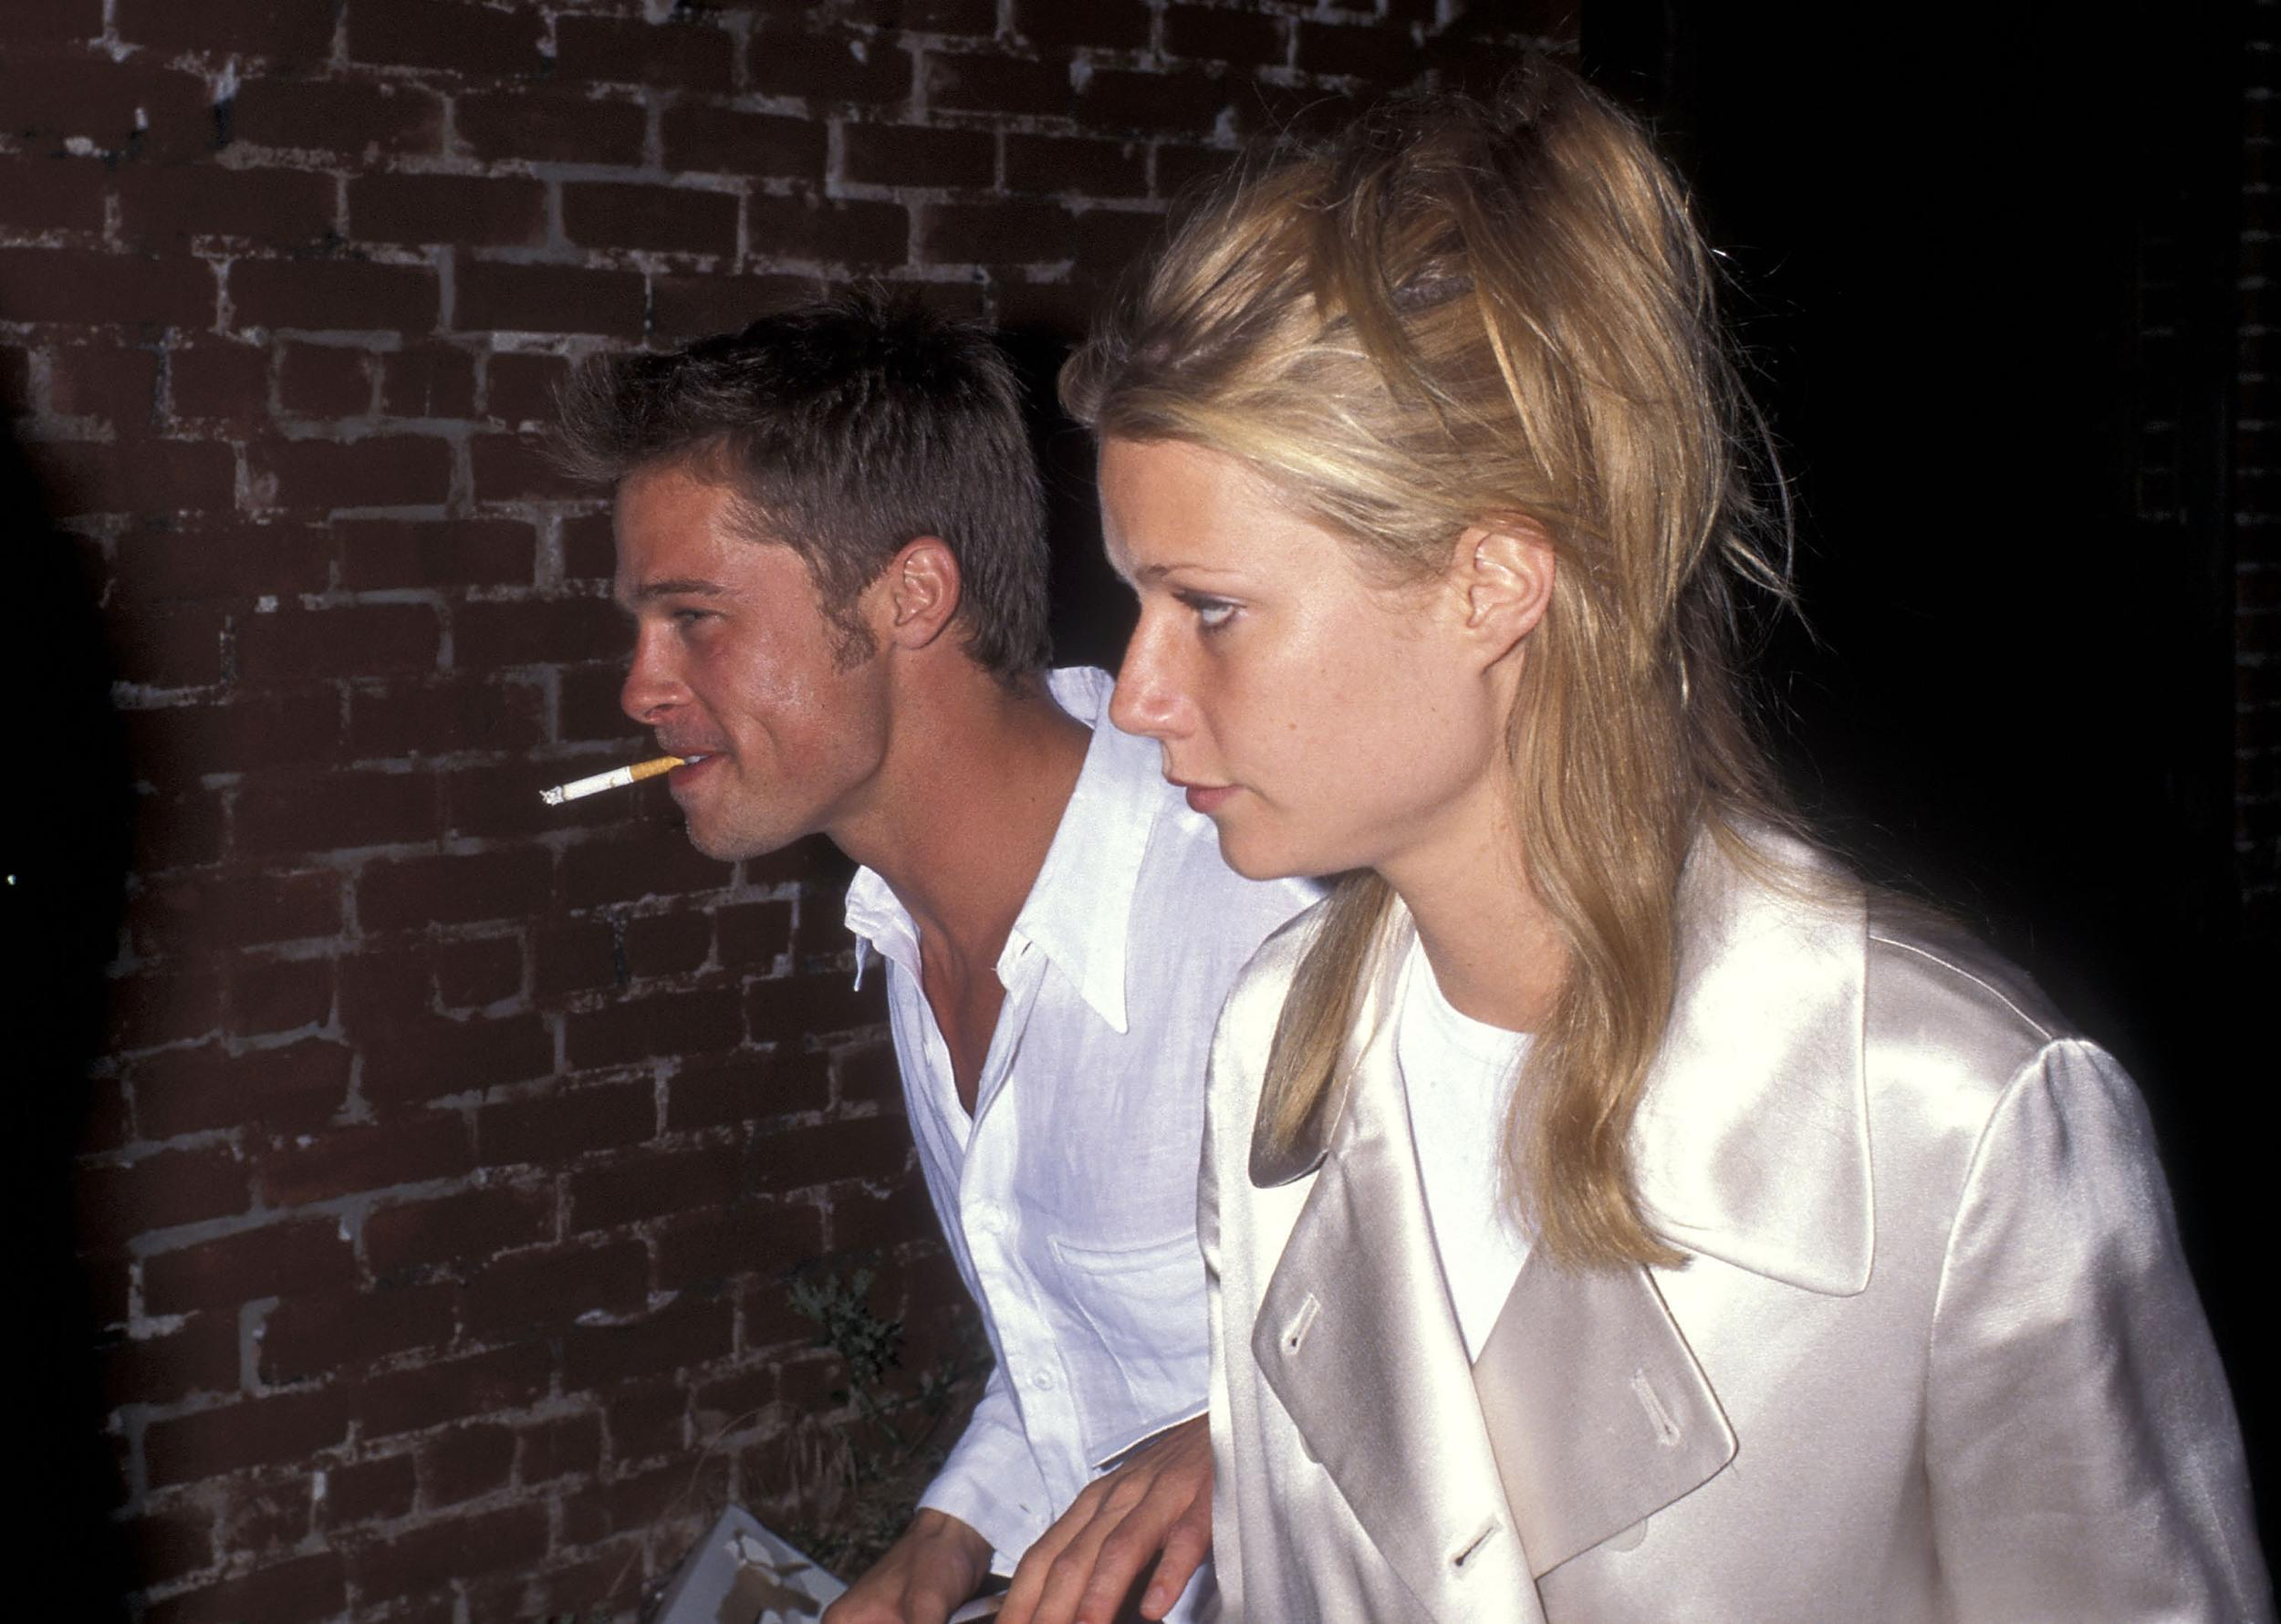 Actor Brad Pitt and actress Gwyneth Paltrow attend the 'Living in Oblivion' West Los Angeles Premiere on July 12, 1995 at the Royal Theatre in West Los Angeles, California. (Photo by Ron Galella, Ltd./WireImage)